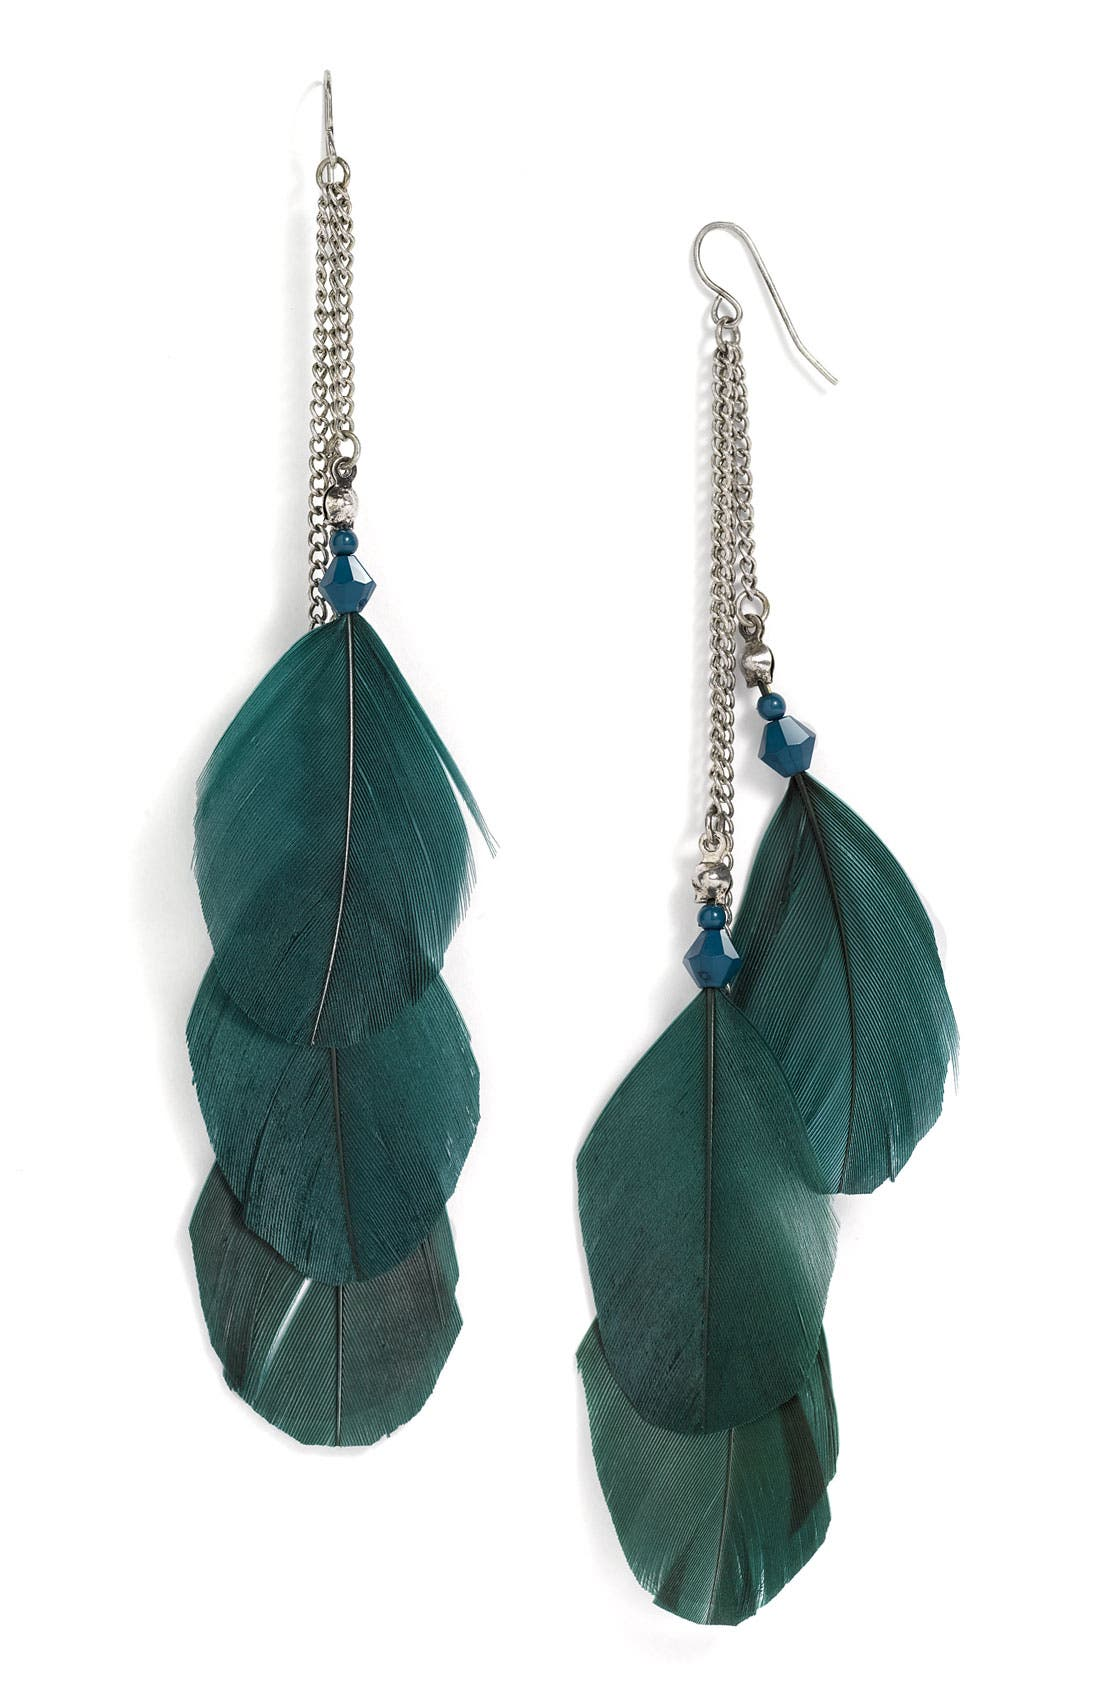 Alternate Image 1 Selected - Stephan & Co. Feather & Bead Earrings